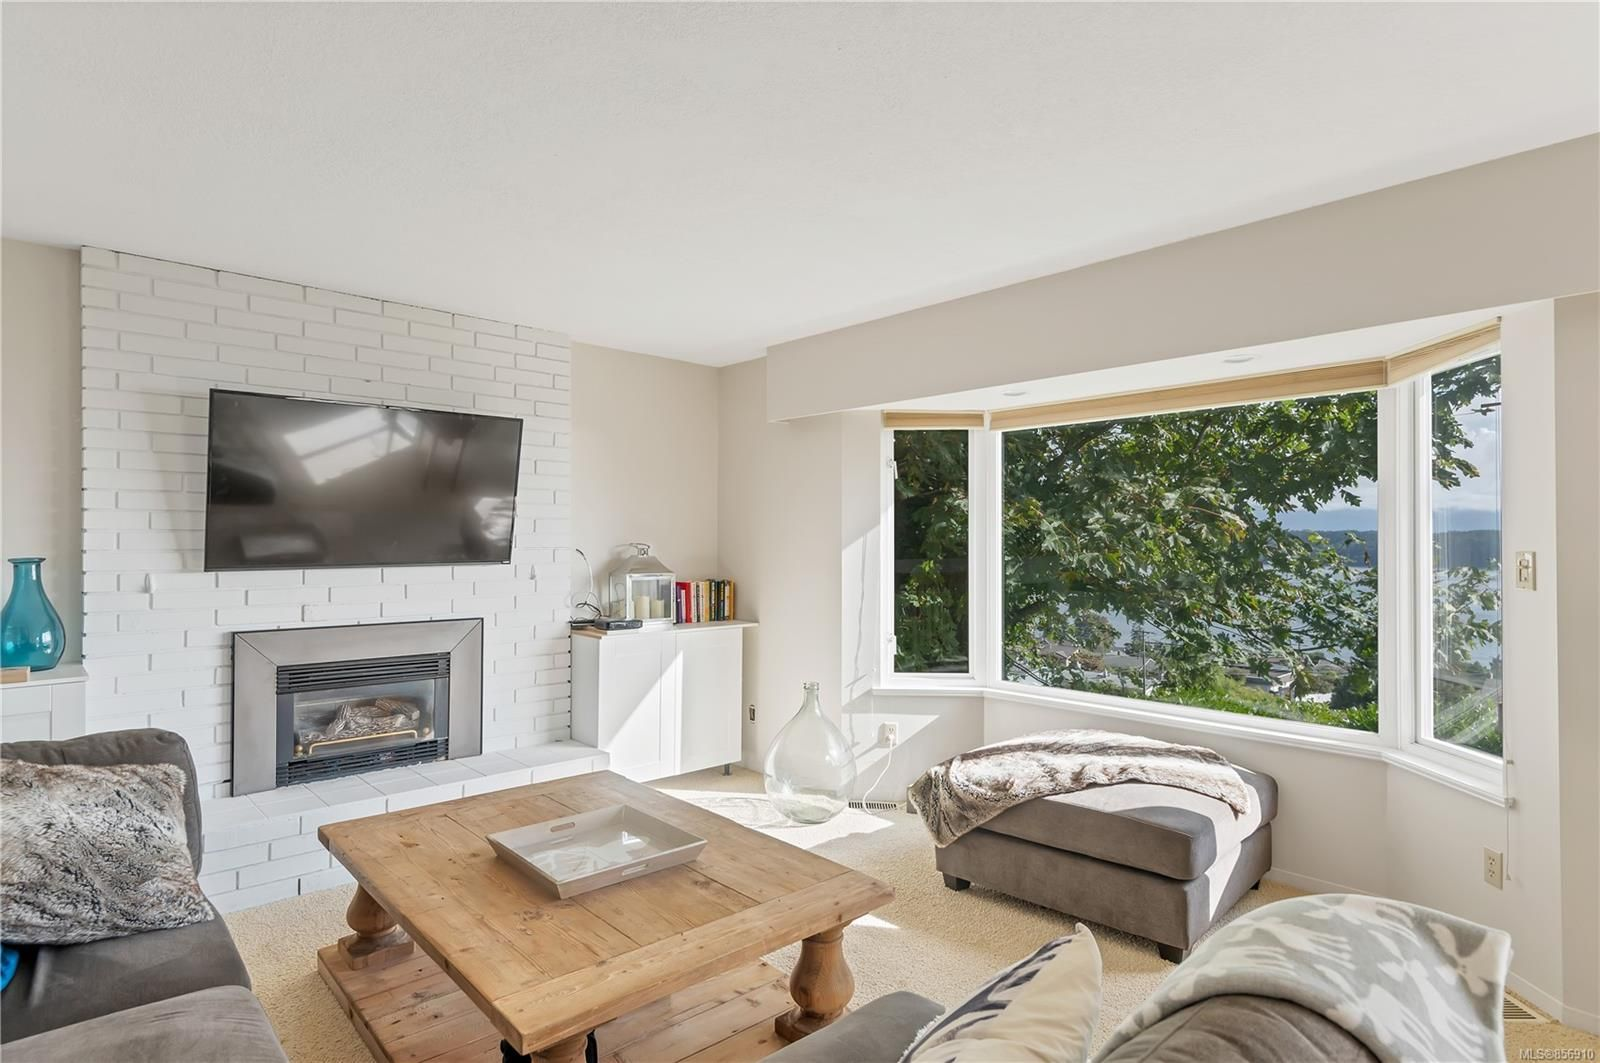 Photo 21: Photos: 215 S Alder St in : CR Campbell River Central House for sale (Campbell River)  : MLS®# 856910